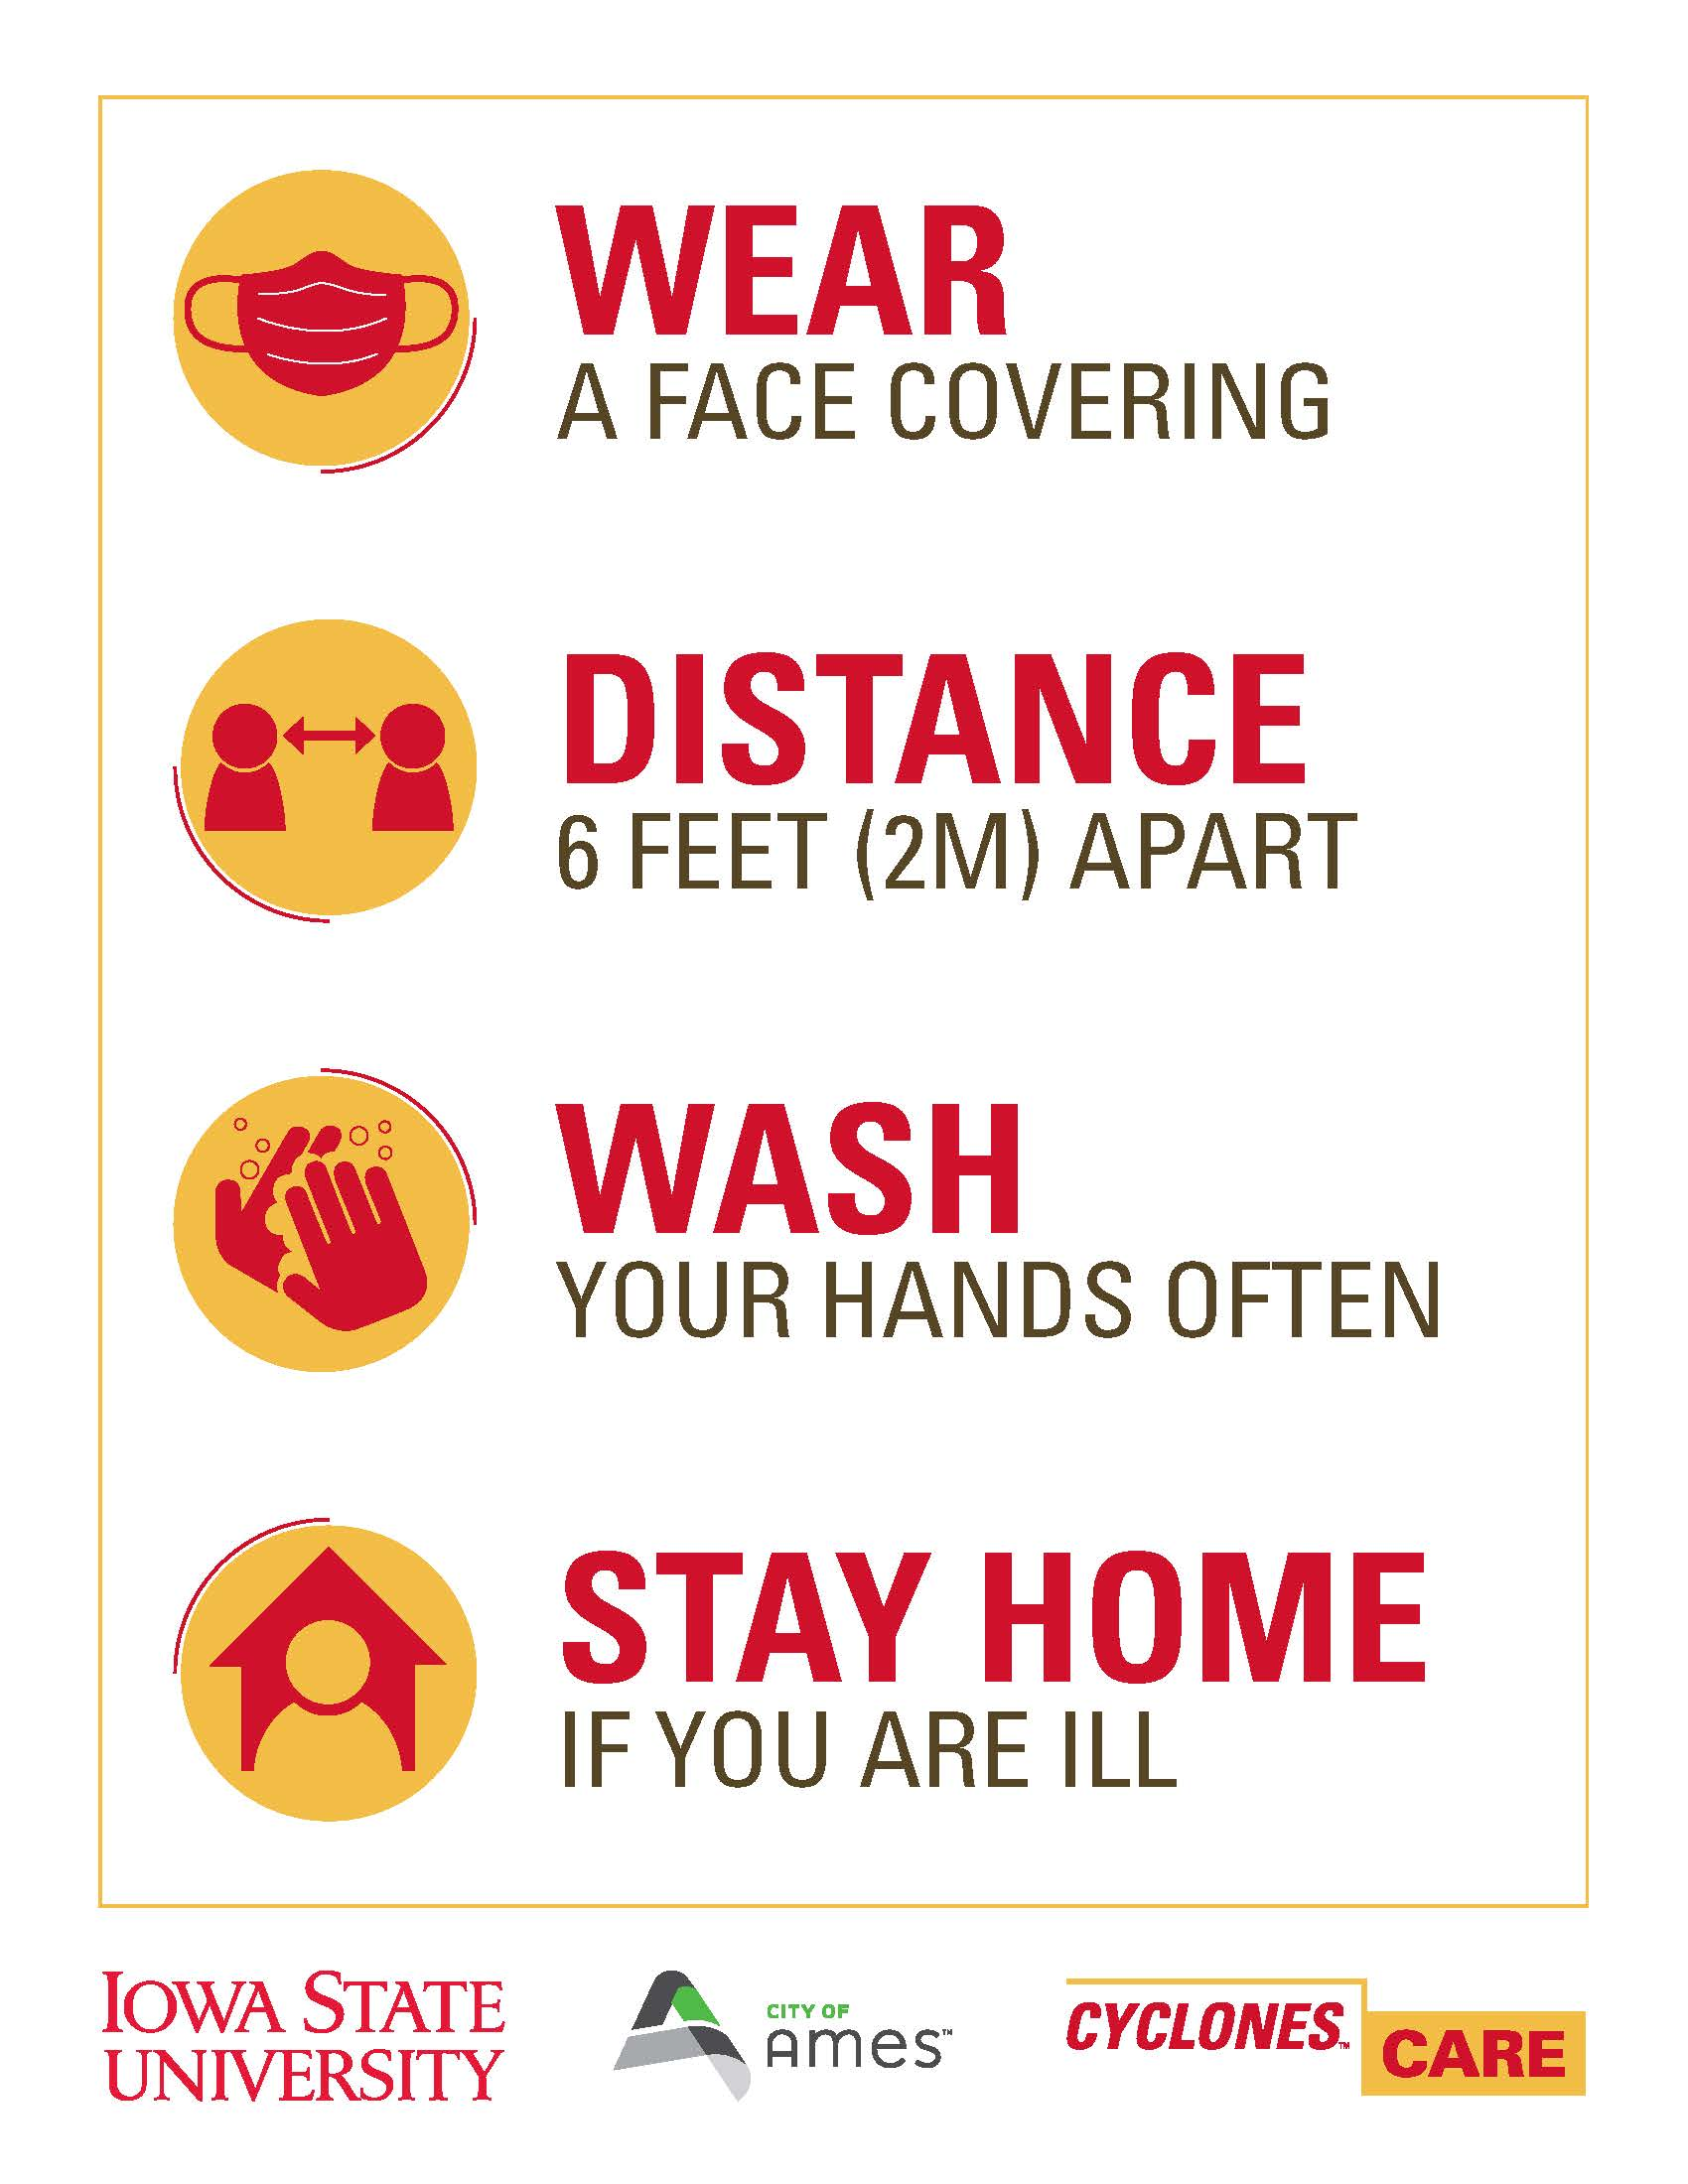 Cyclones Care. Wear a face covering. Distance 6 feet (2m) apart. Wash your hands often. Stay home if you are ill.